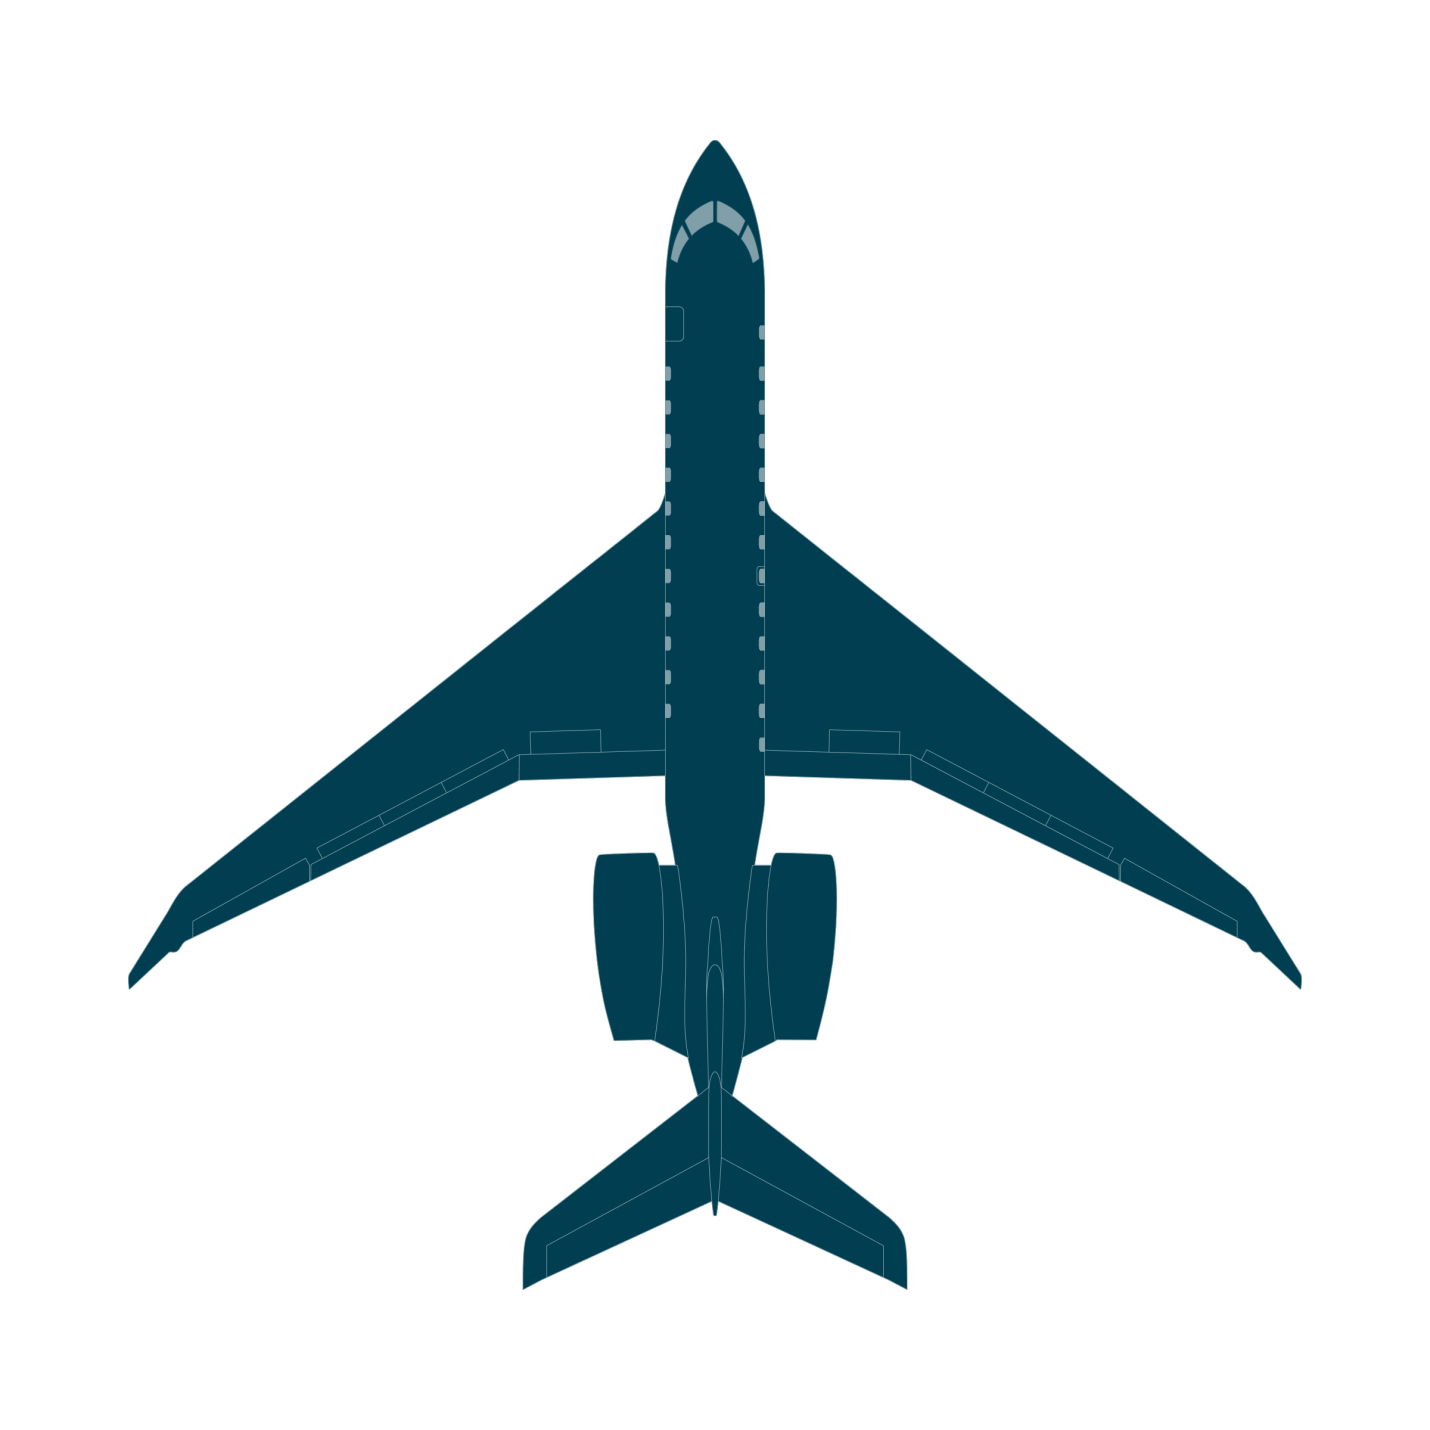 canadair aircraft wiring diagram wiring diagram blog Bombardier Fan Spacer global 8000 bombardier business aircraft how a jet engine works diagram canadair aircraft wiring diagram